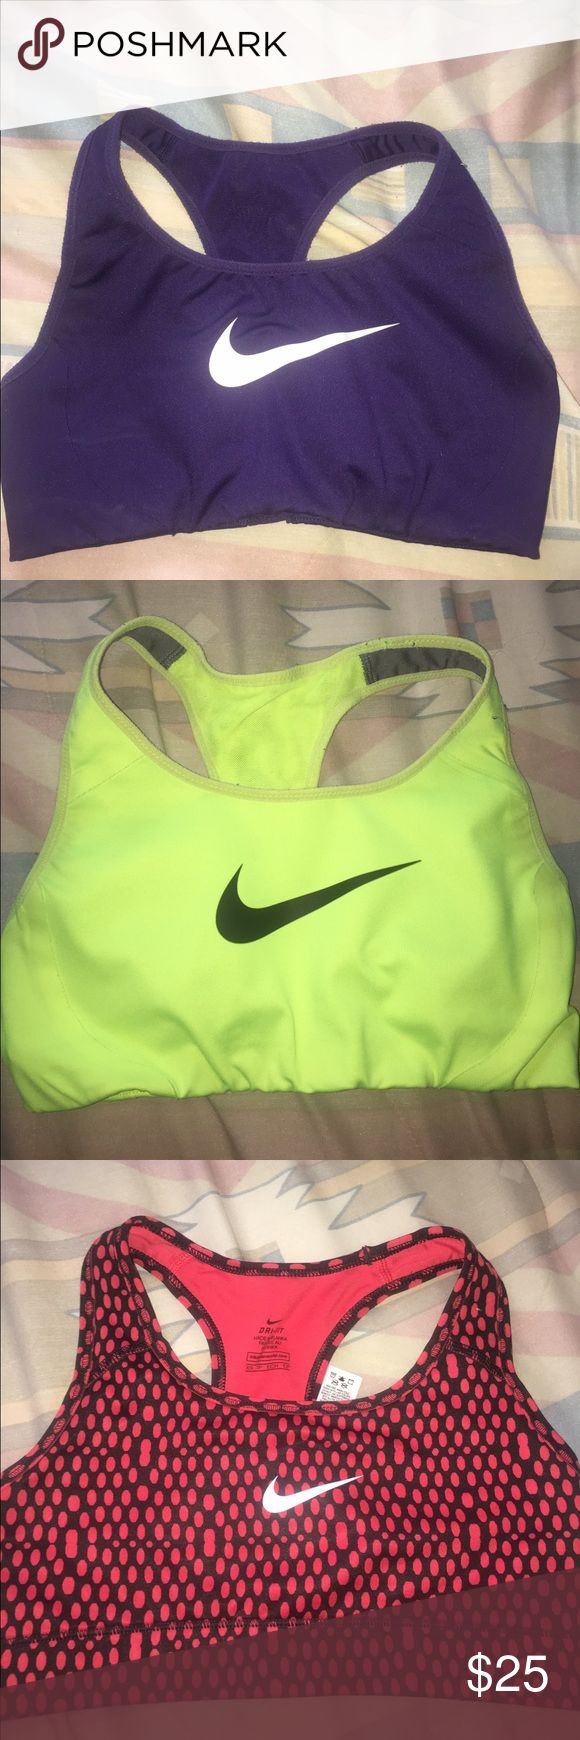 3 NIKE SPORTS BRAS 3 nike sports bras XS, barely worn no damage, purple and yellow ones are high impact and the red polka dot one is regular impact, make an offer:) Nike Intimates & Sleepwear Bras